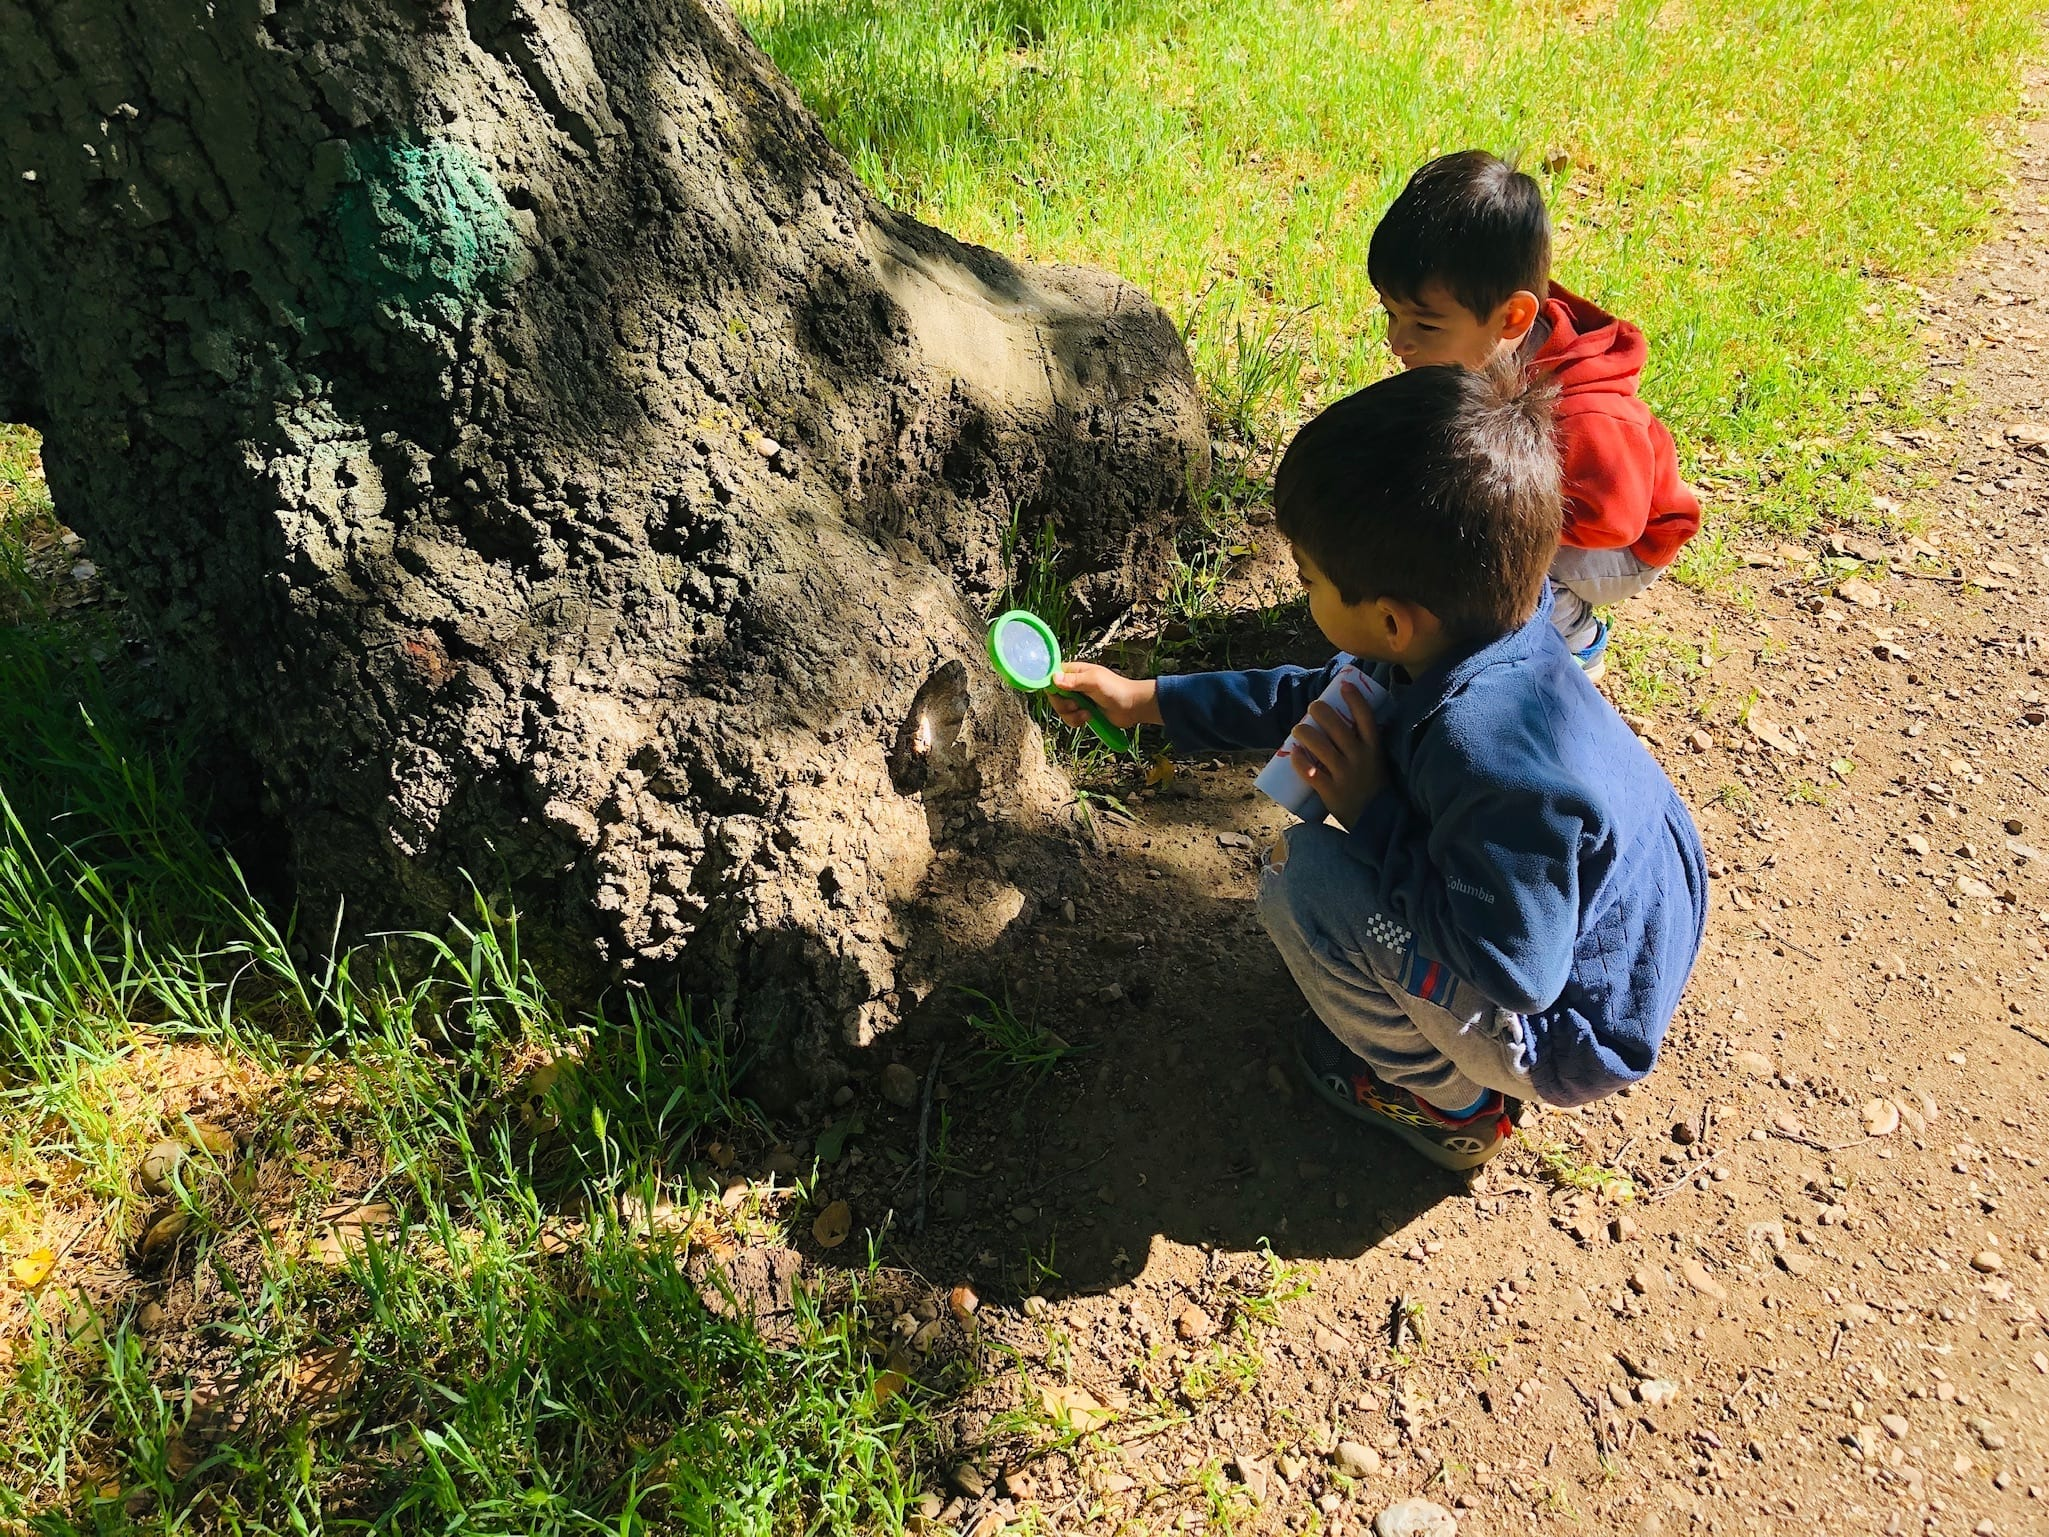 The boys looking for ants at the root of a tree